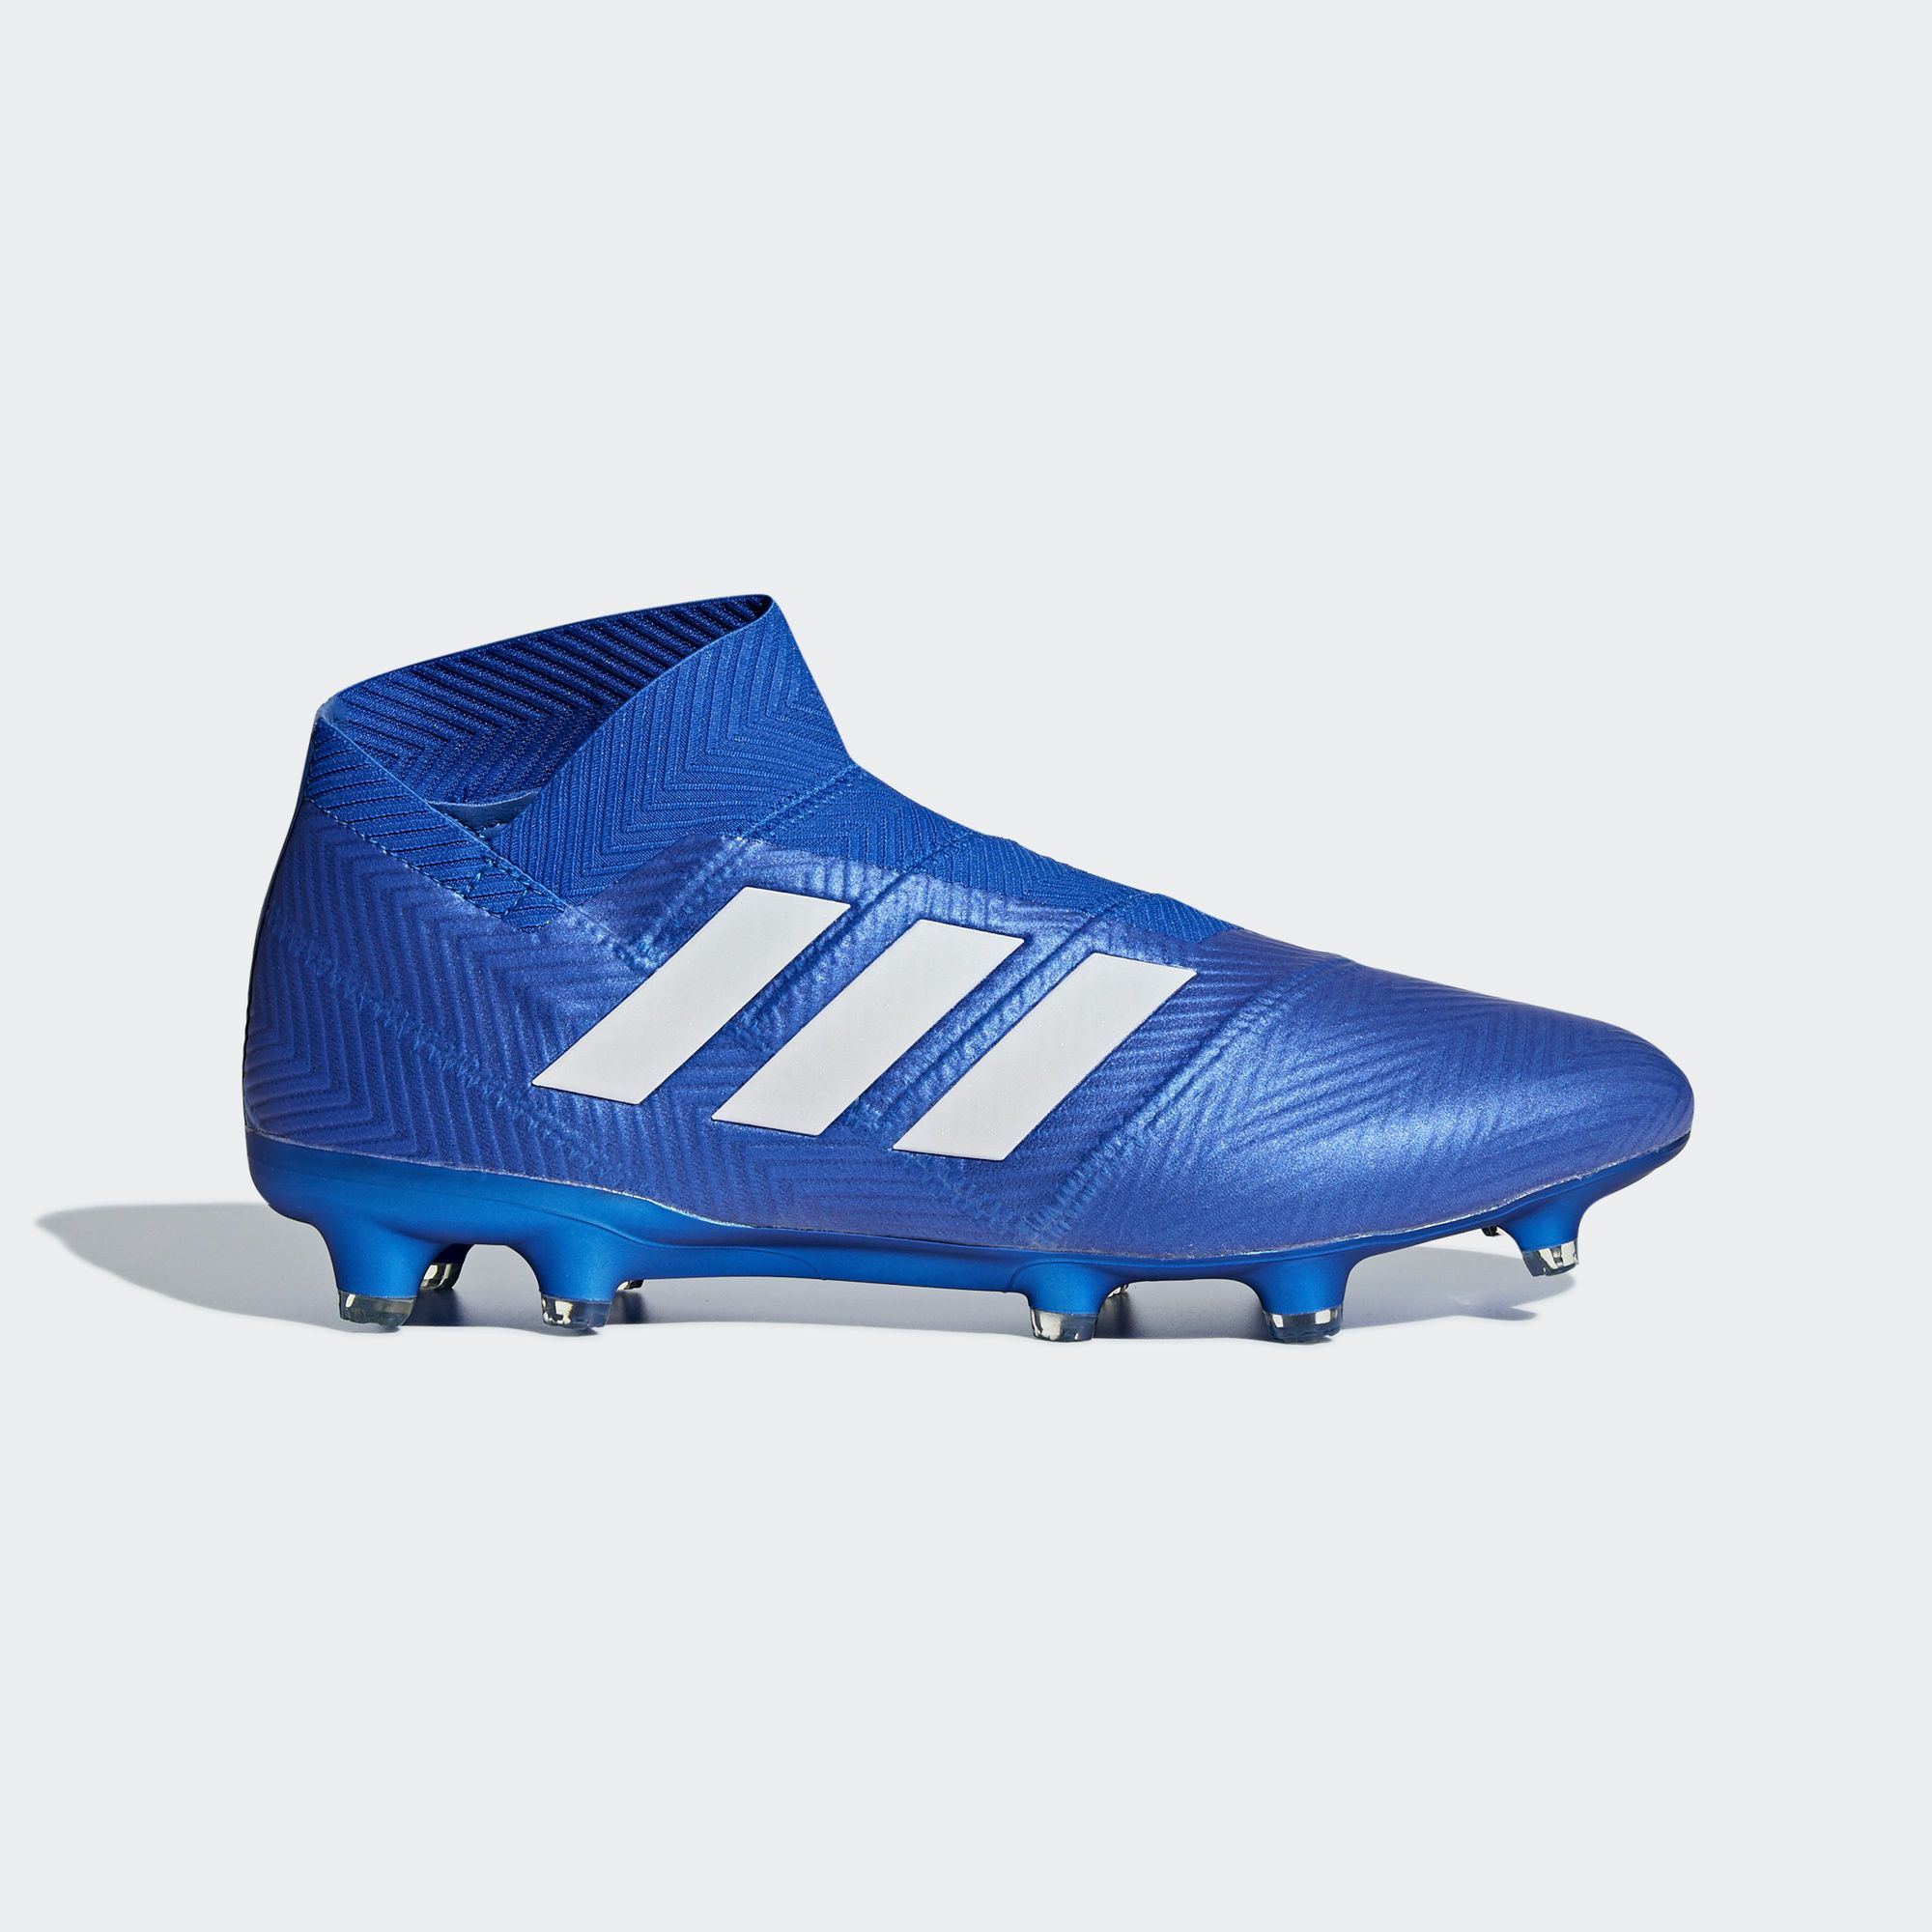 huge selection of 13fb1 ef542 Shop for Mens Nemeziz 18+ Firm Ground Boots - Fooblu at adidas.ca!